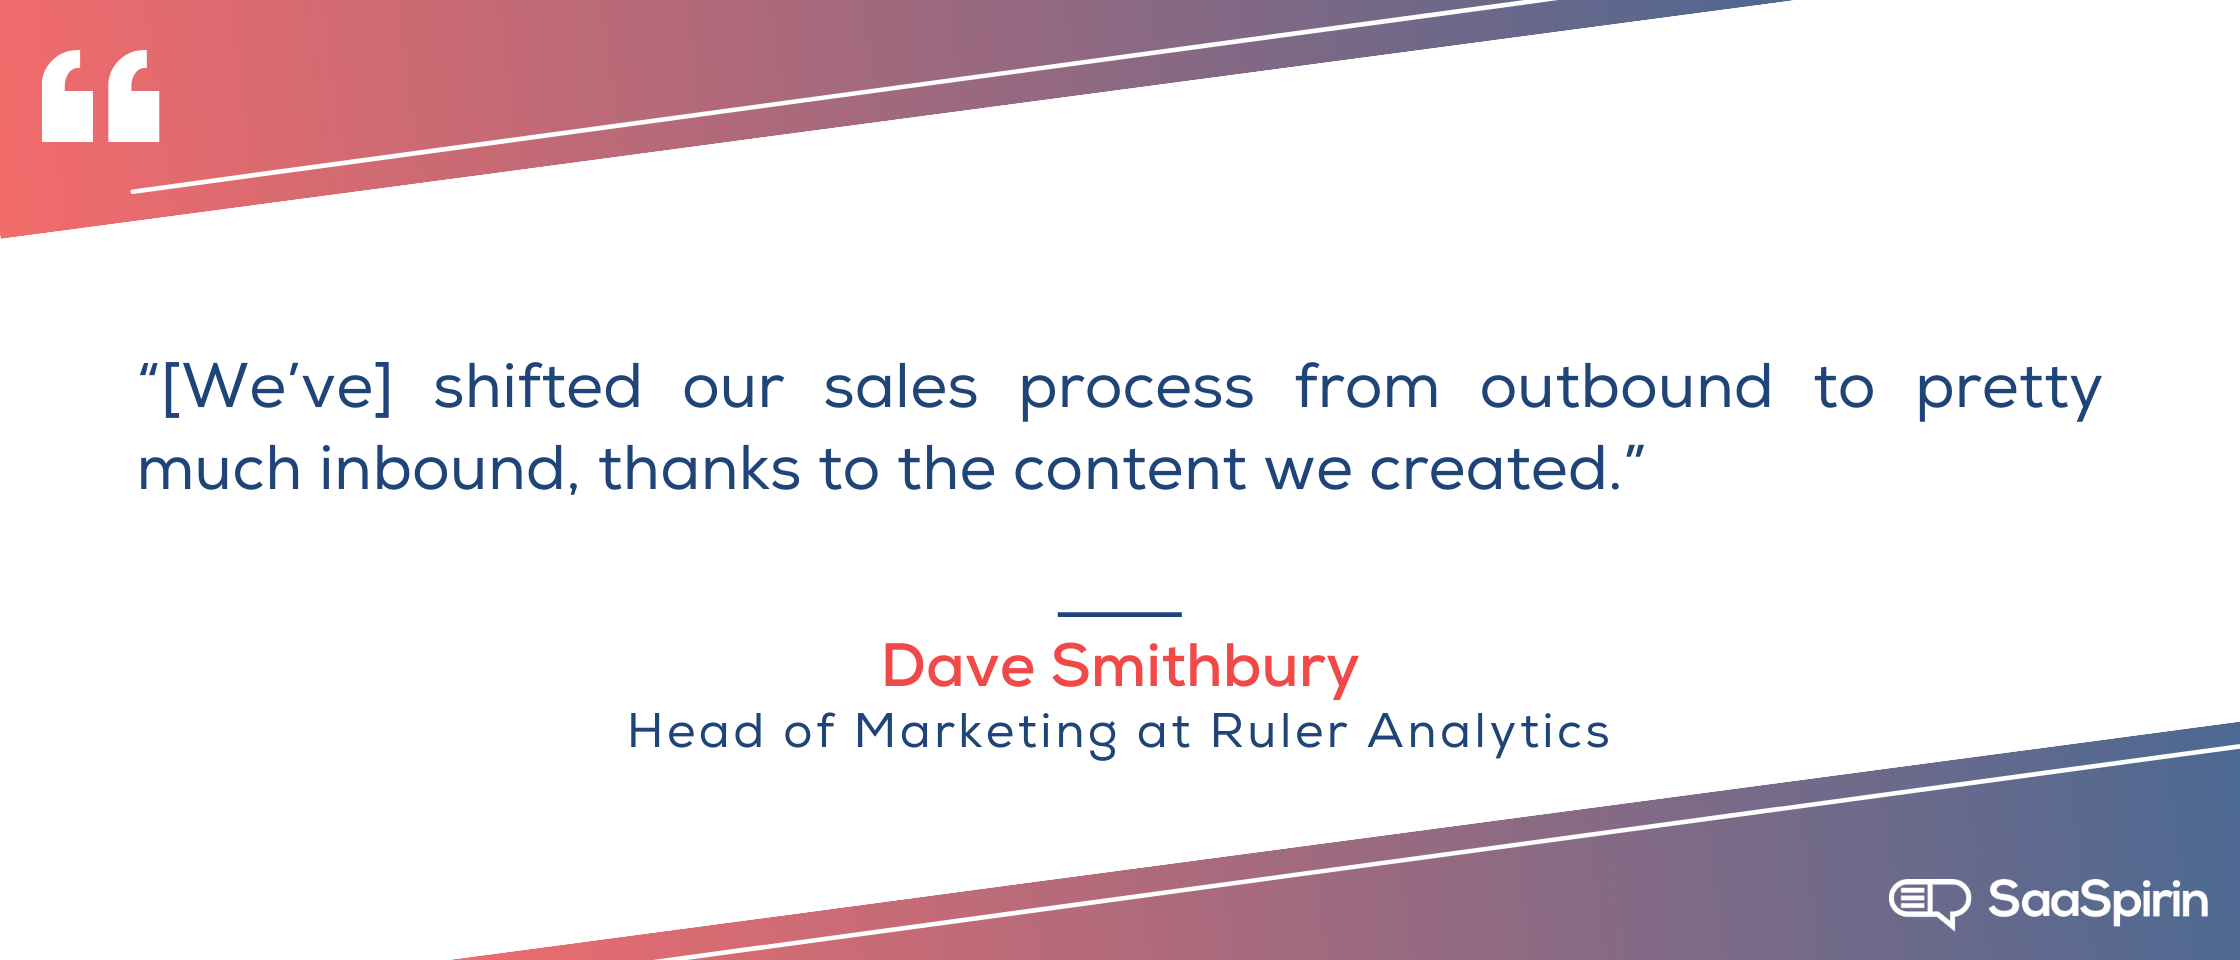 Weve-shifted-our-sales-process-from-outbound-to-pretty-much-inbound-thanks-to-the-content-we-created.png